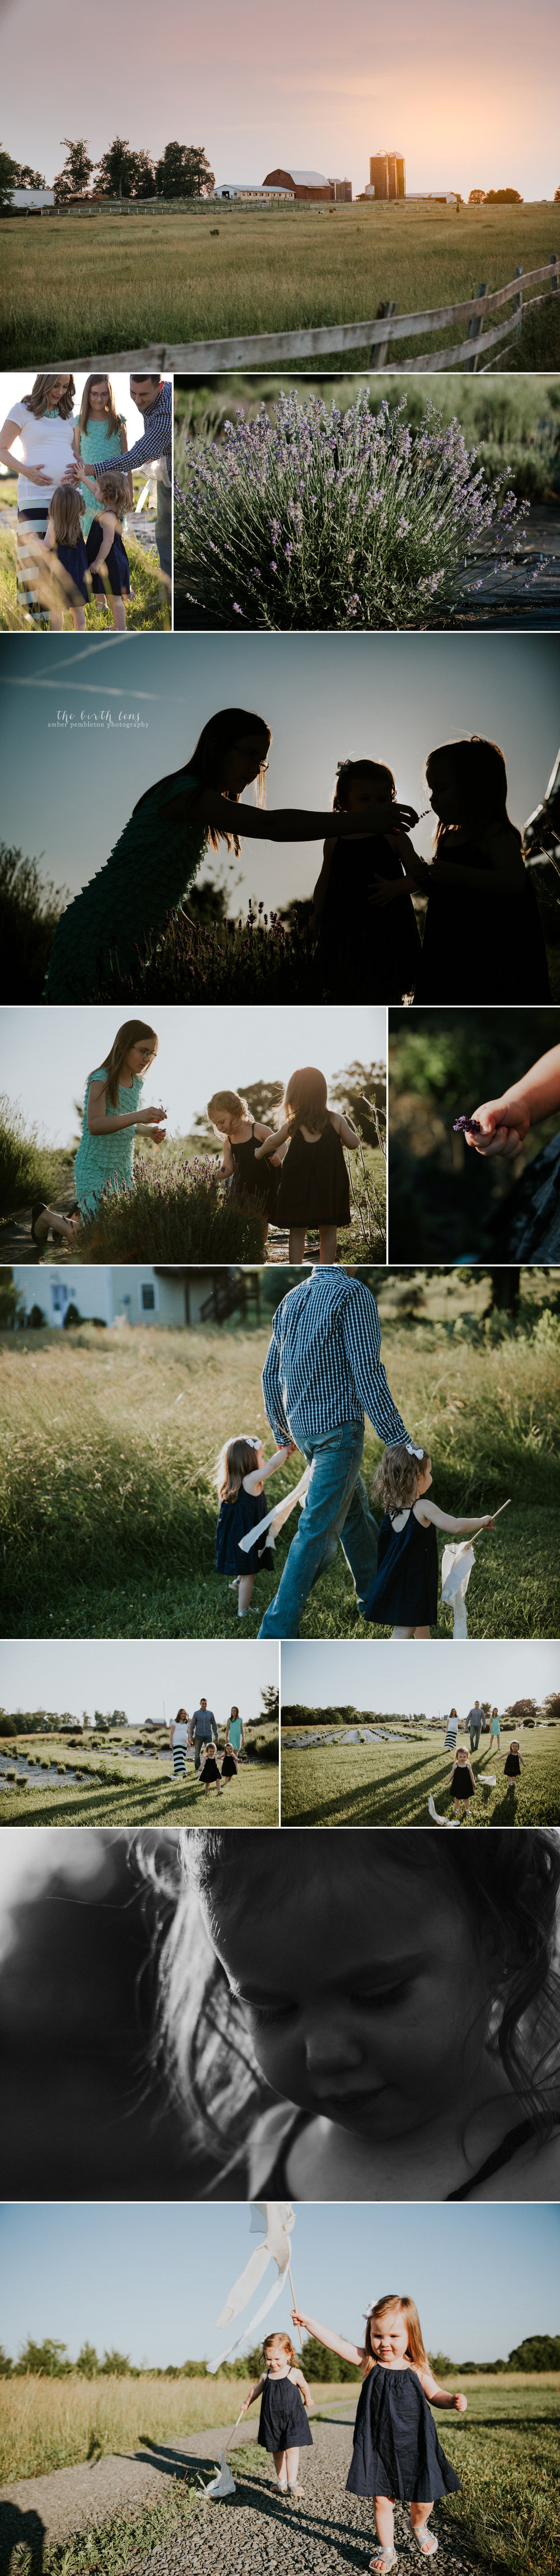 family-maternity-session-lake-tahoe.jpg